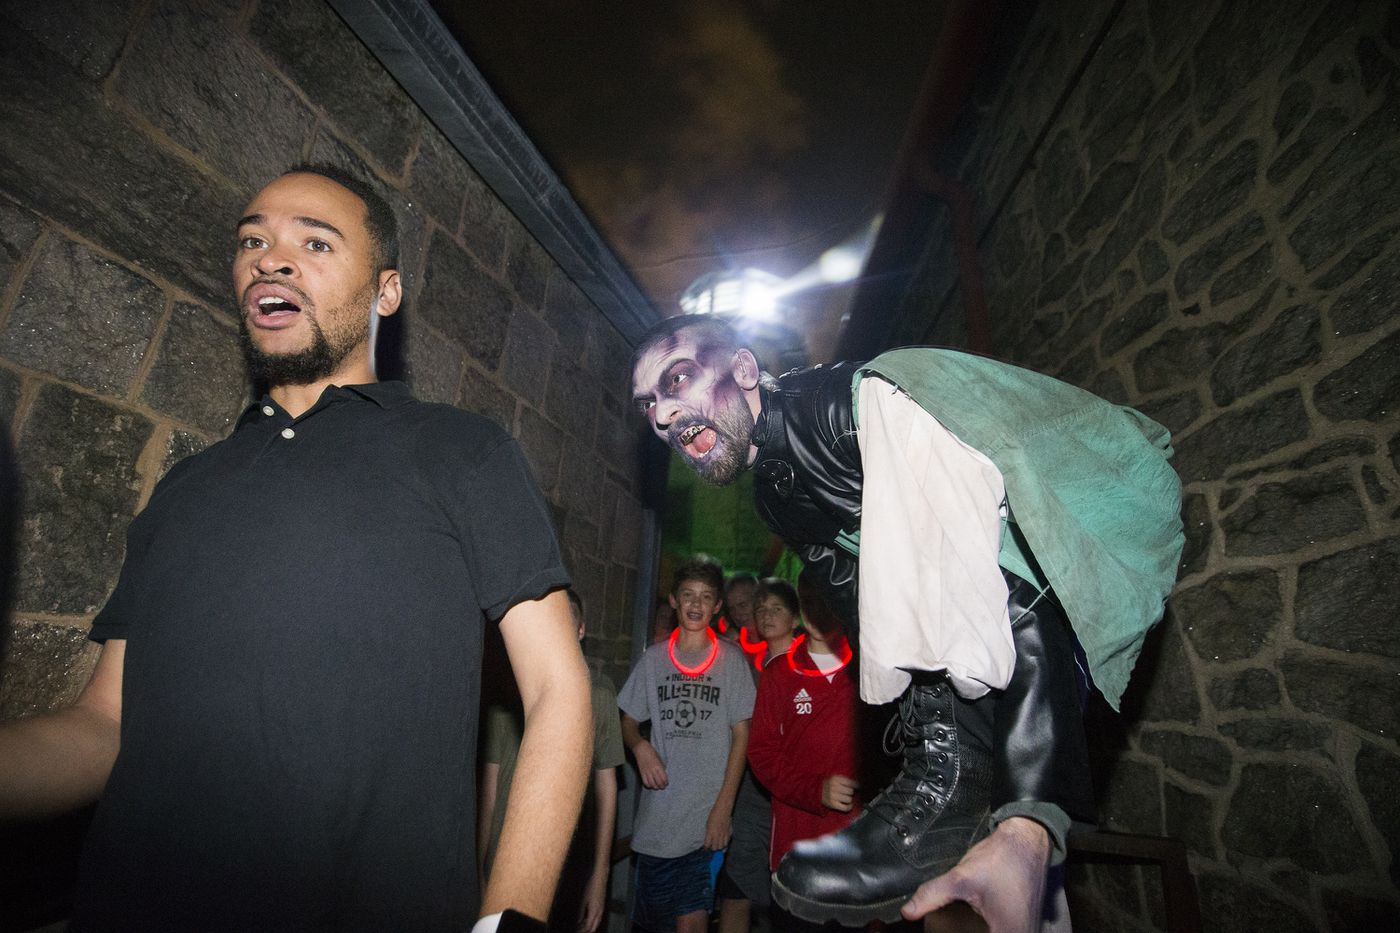 Behind the scenes at Terror Behind the Walls: What it's like to make people scream ALL night long